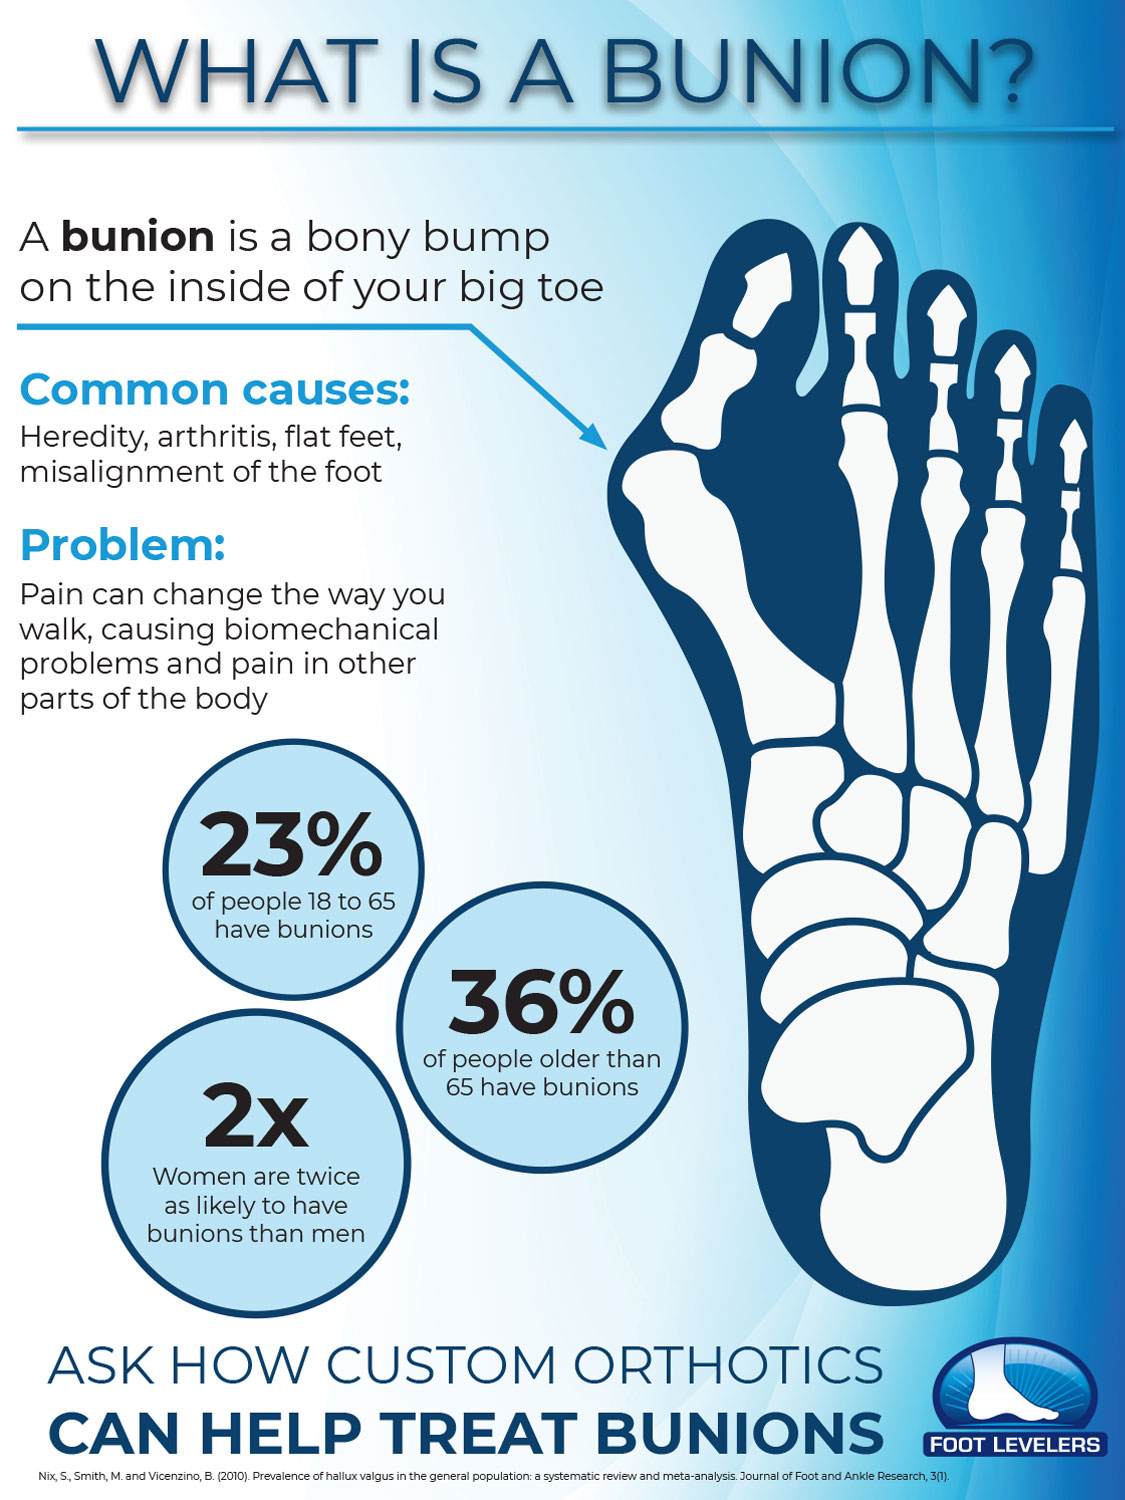 What's a bunion